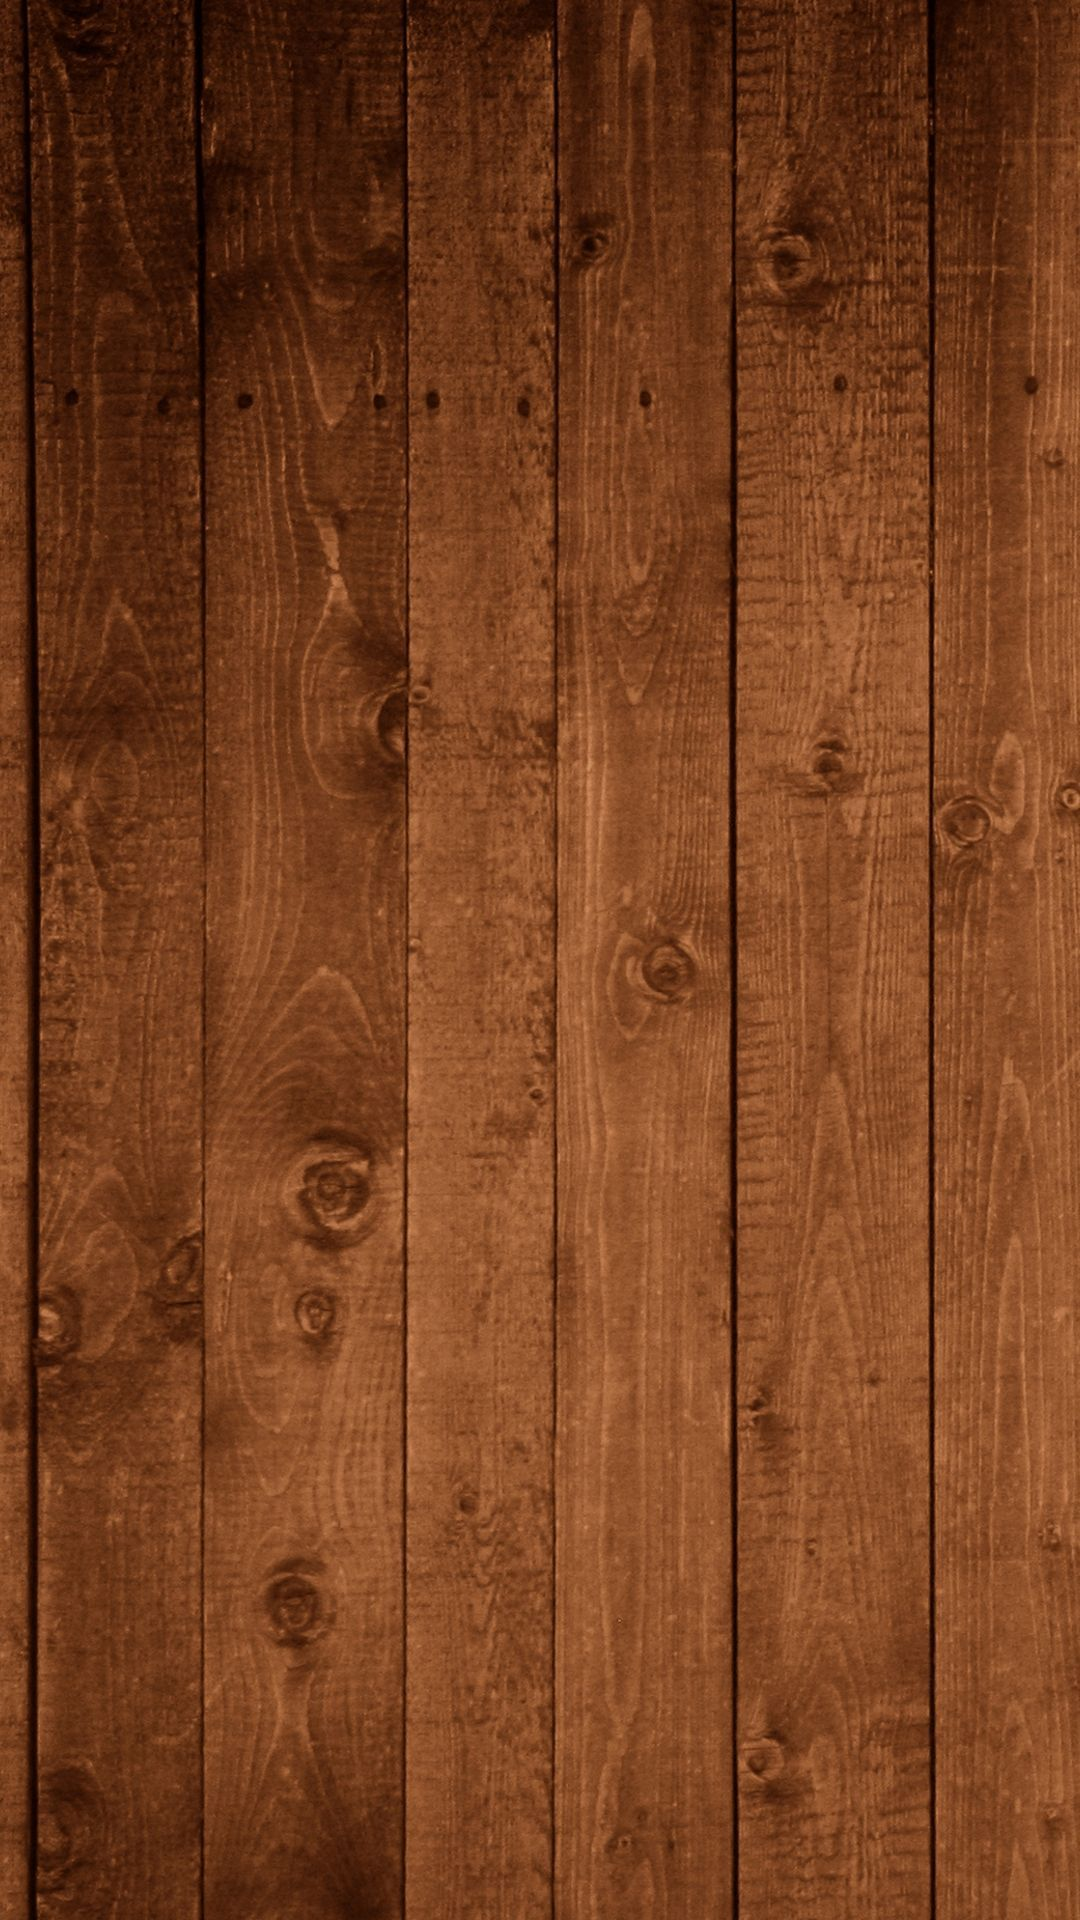 Brown Quenalbertini Wood Grain Texture Iphone Wallpaper